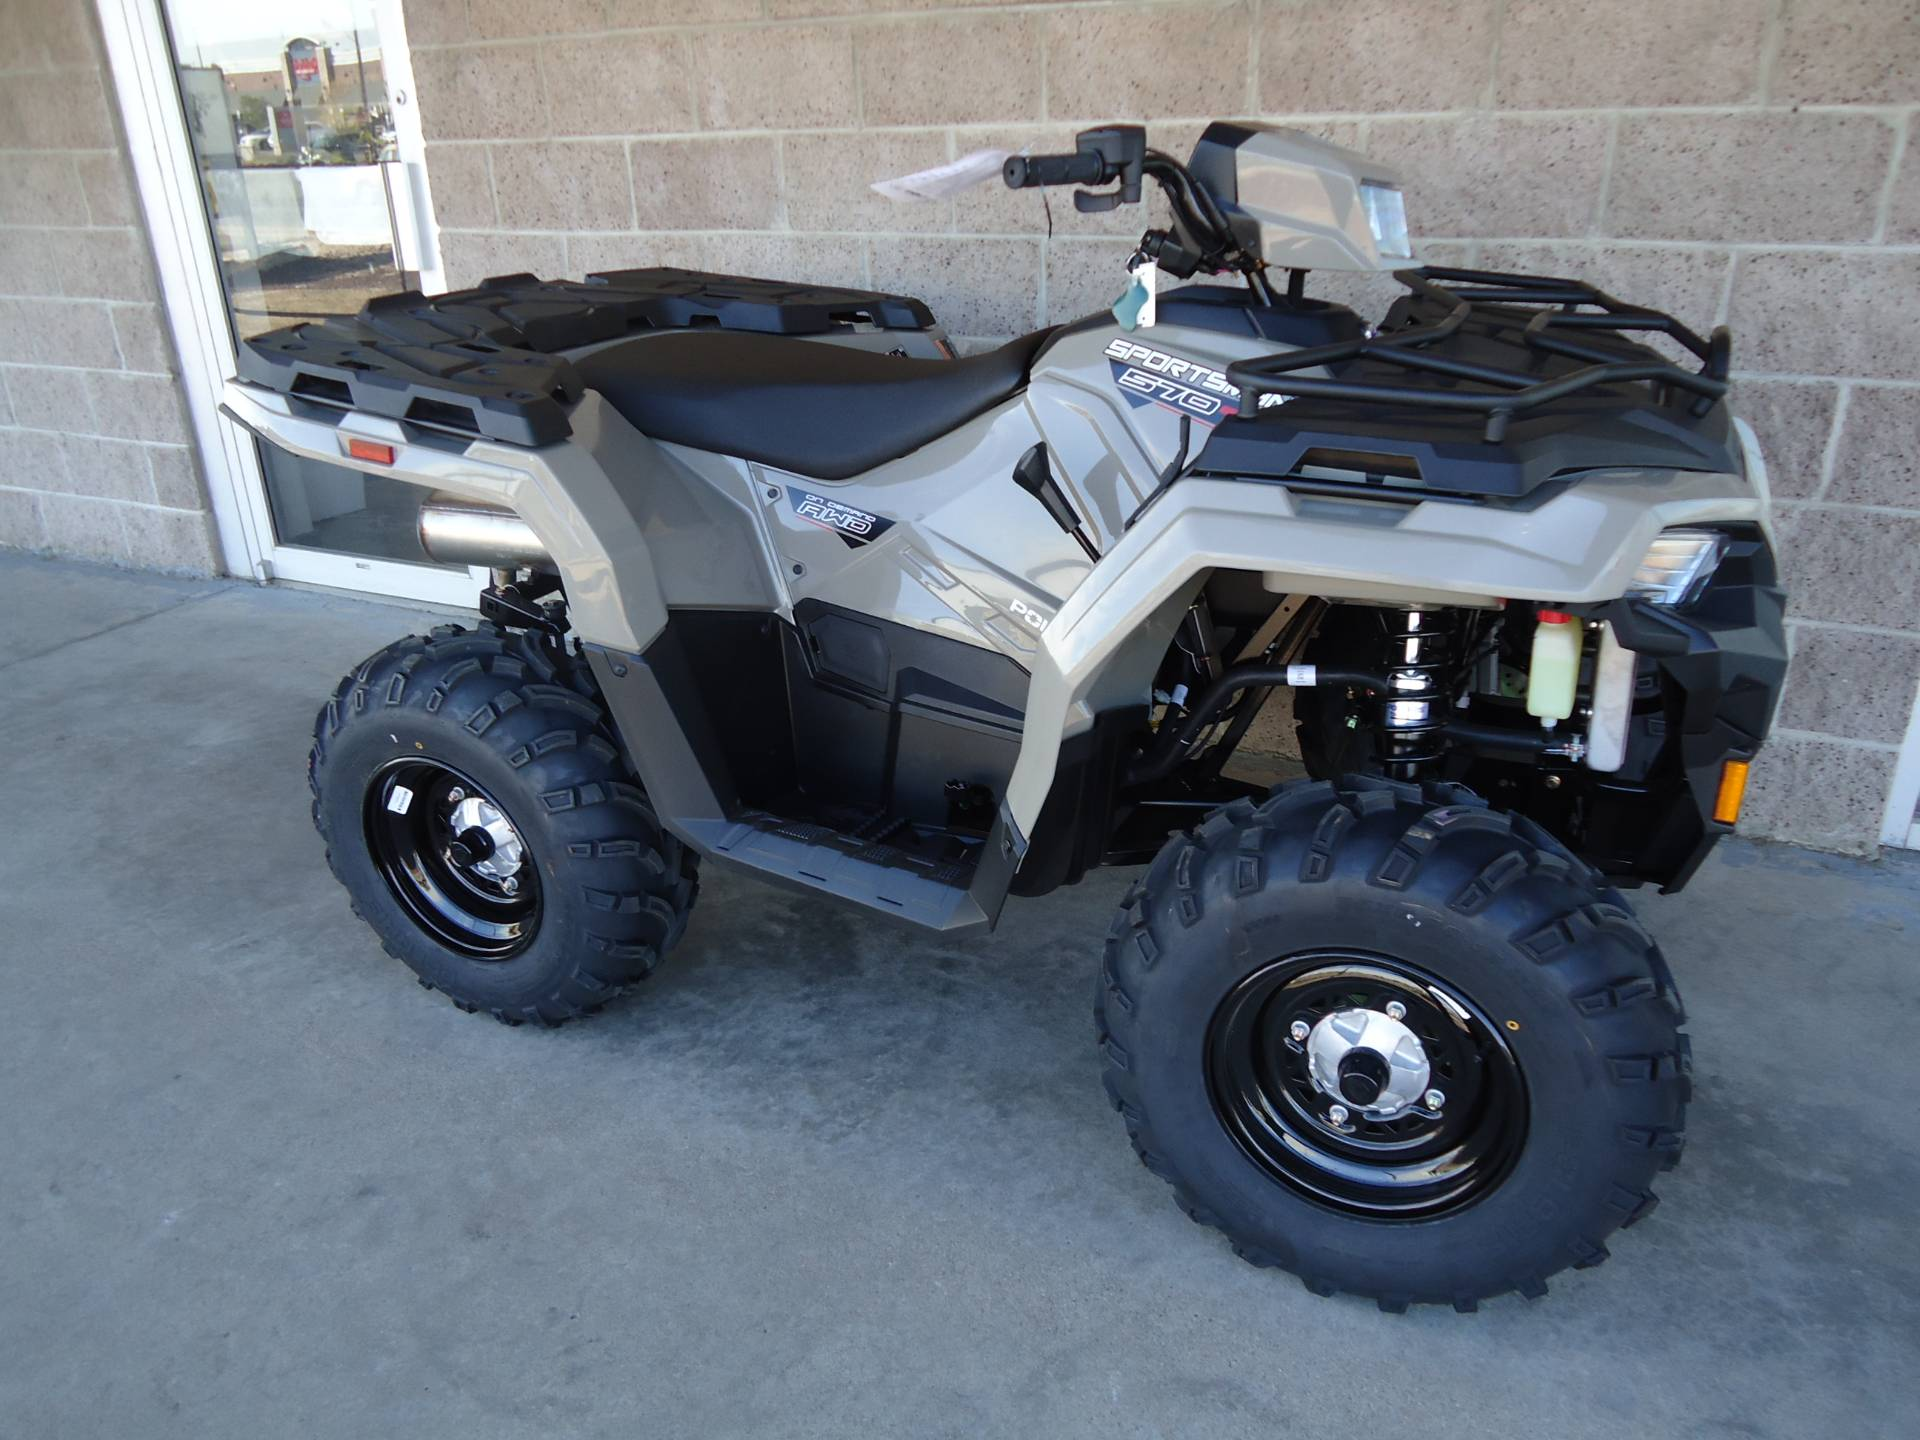 2021 Polaris Sportsman 570 in Denver, Colorado - Photo 19